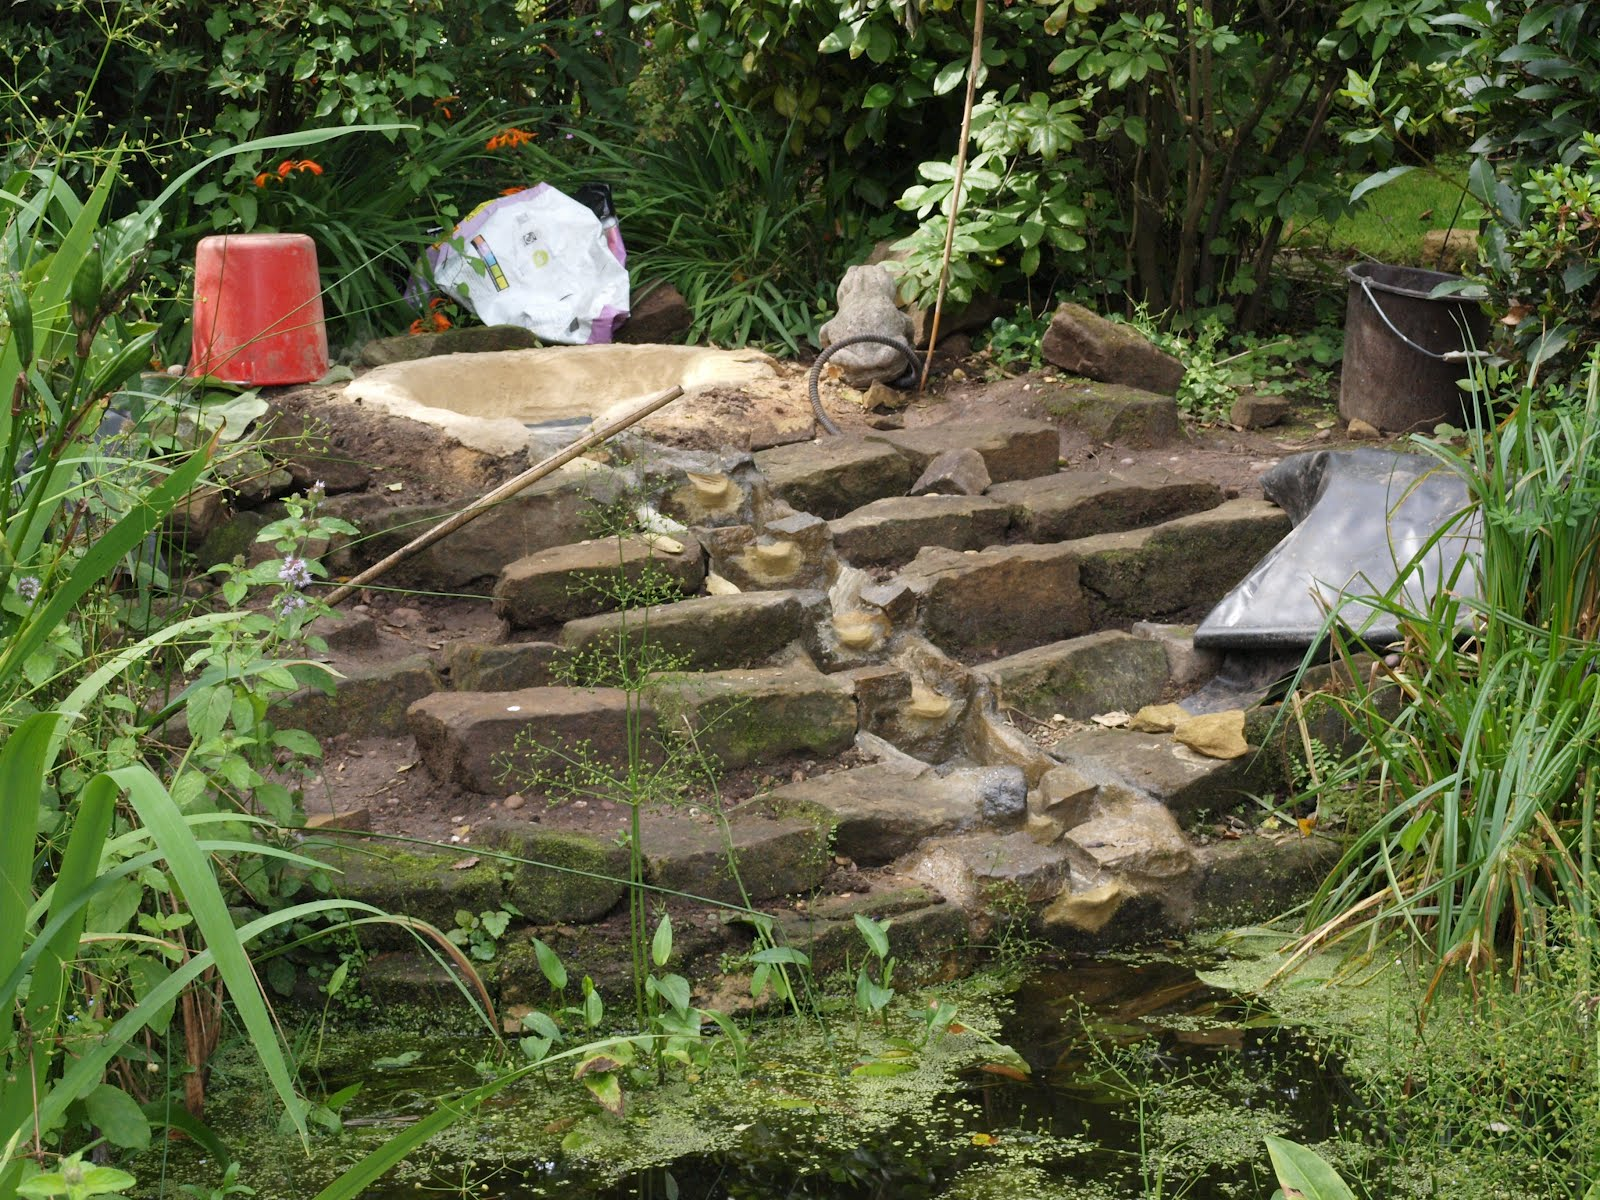 Ragged Robin\'s Nature Notes: A New Water Feature in the Garden